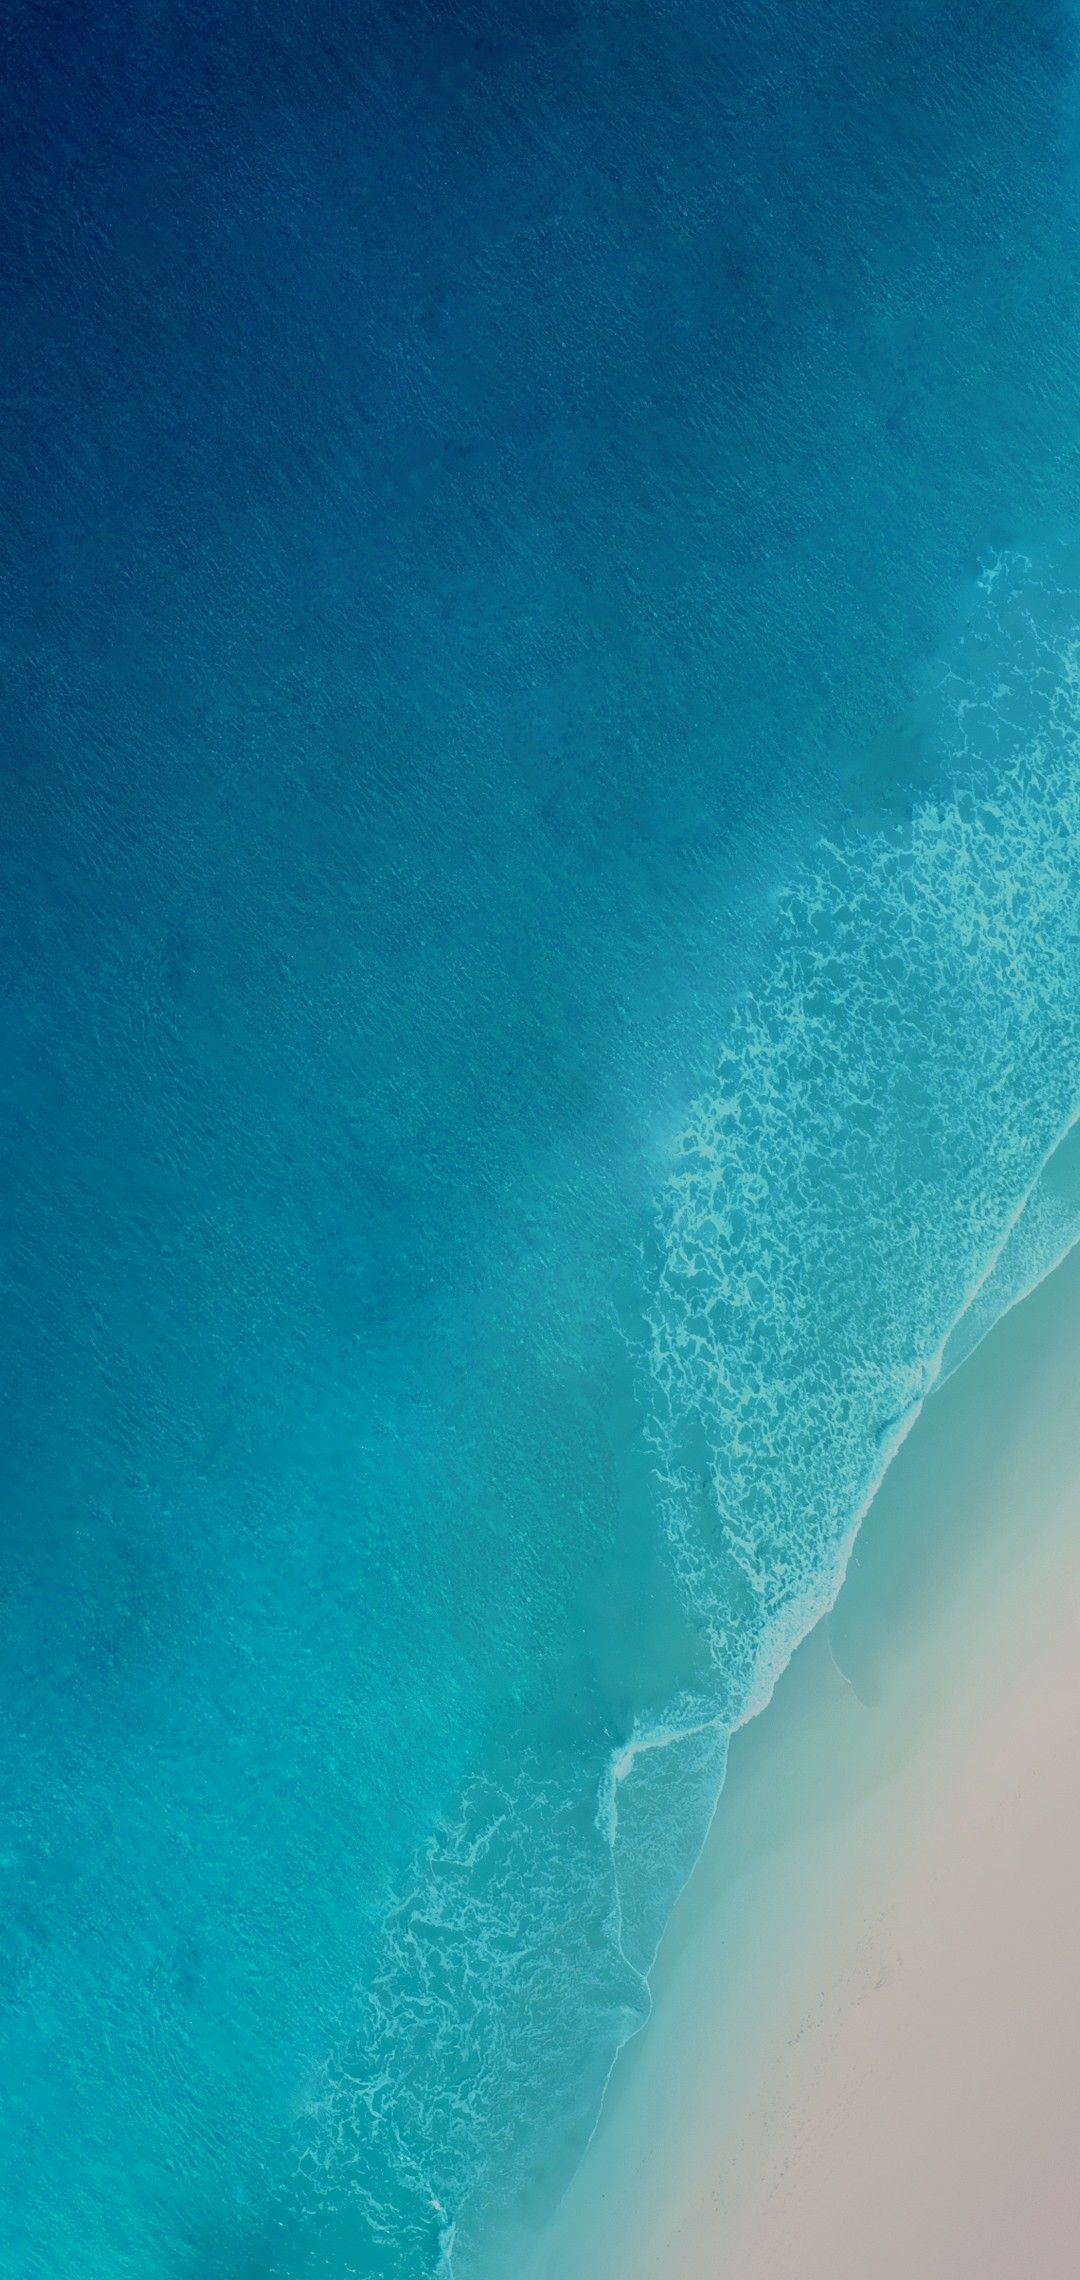 Ios 12 Iphone X Aqua Blue Water Ocean Apple Wallpaper Iphone 8 Clean Beauty Colour Ios Iphone Wallpaper Water Apple Wallpaper Blue Wallpaper Iphone